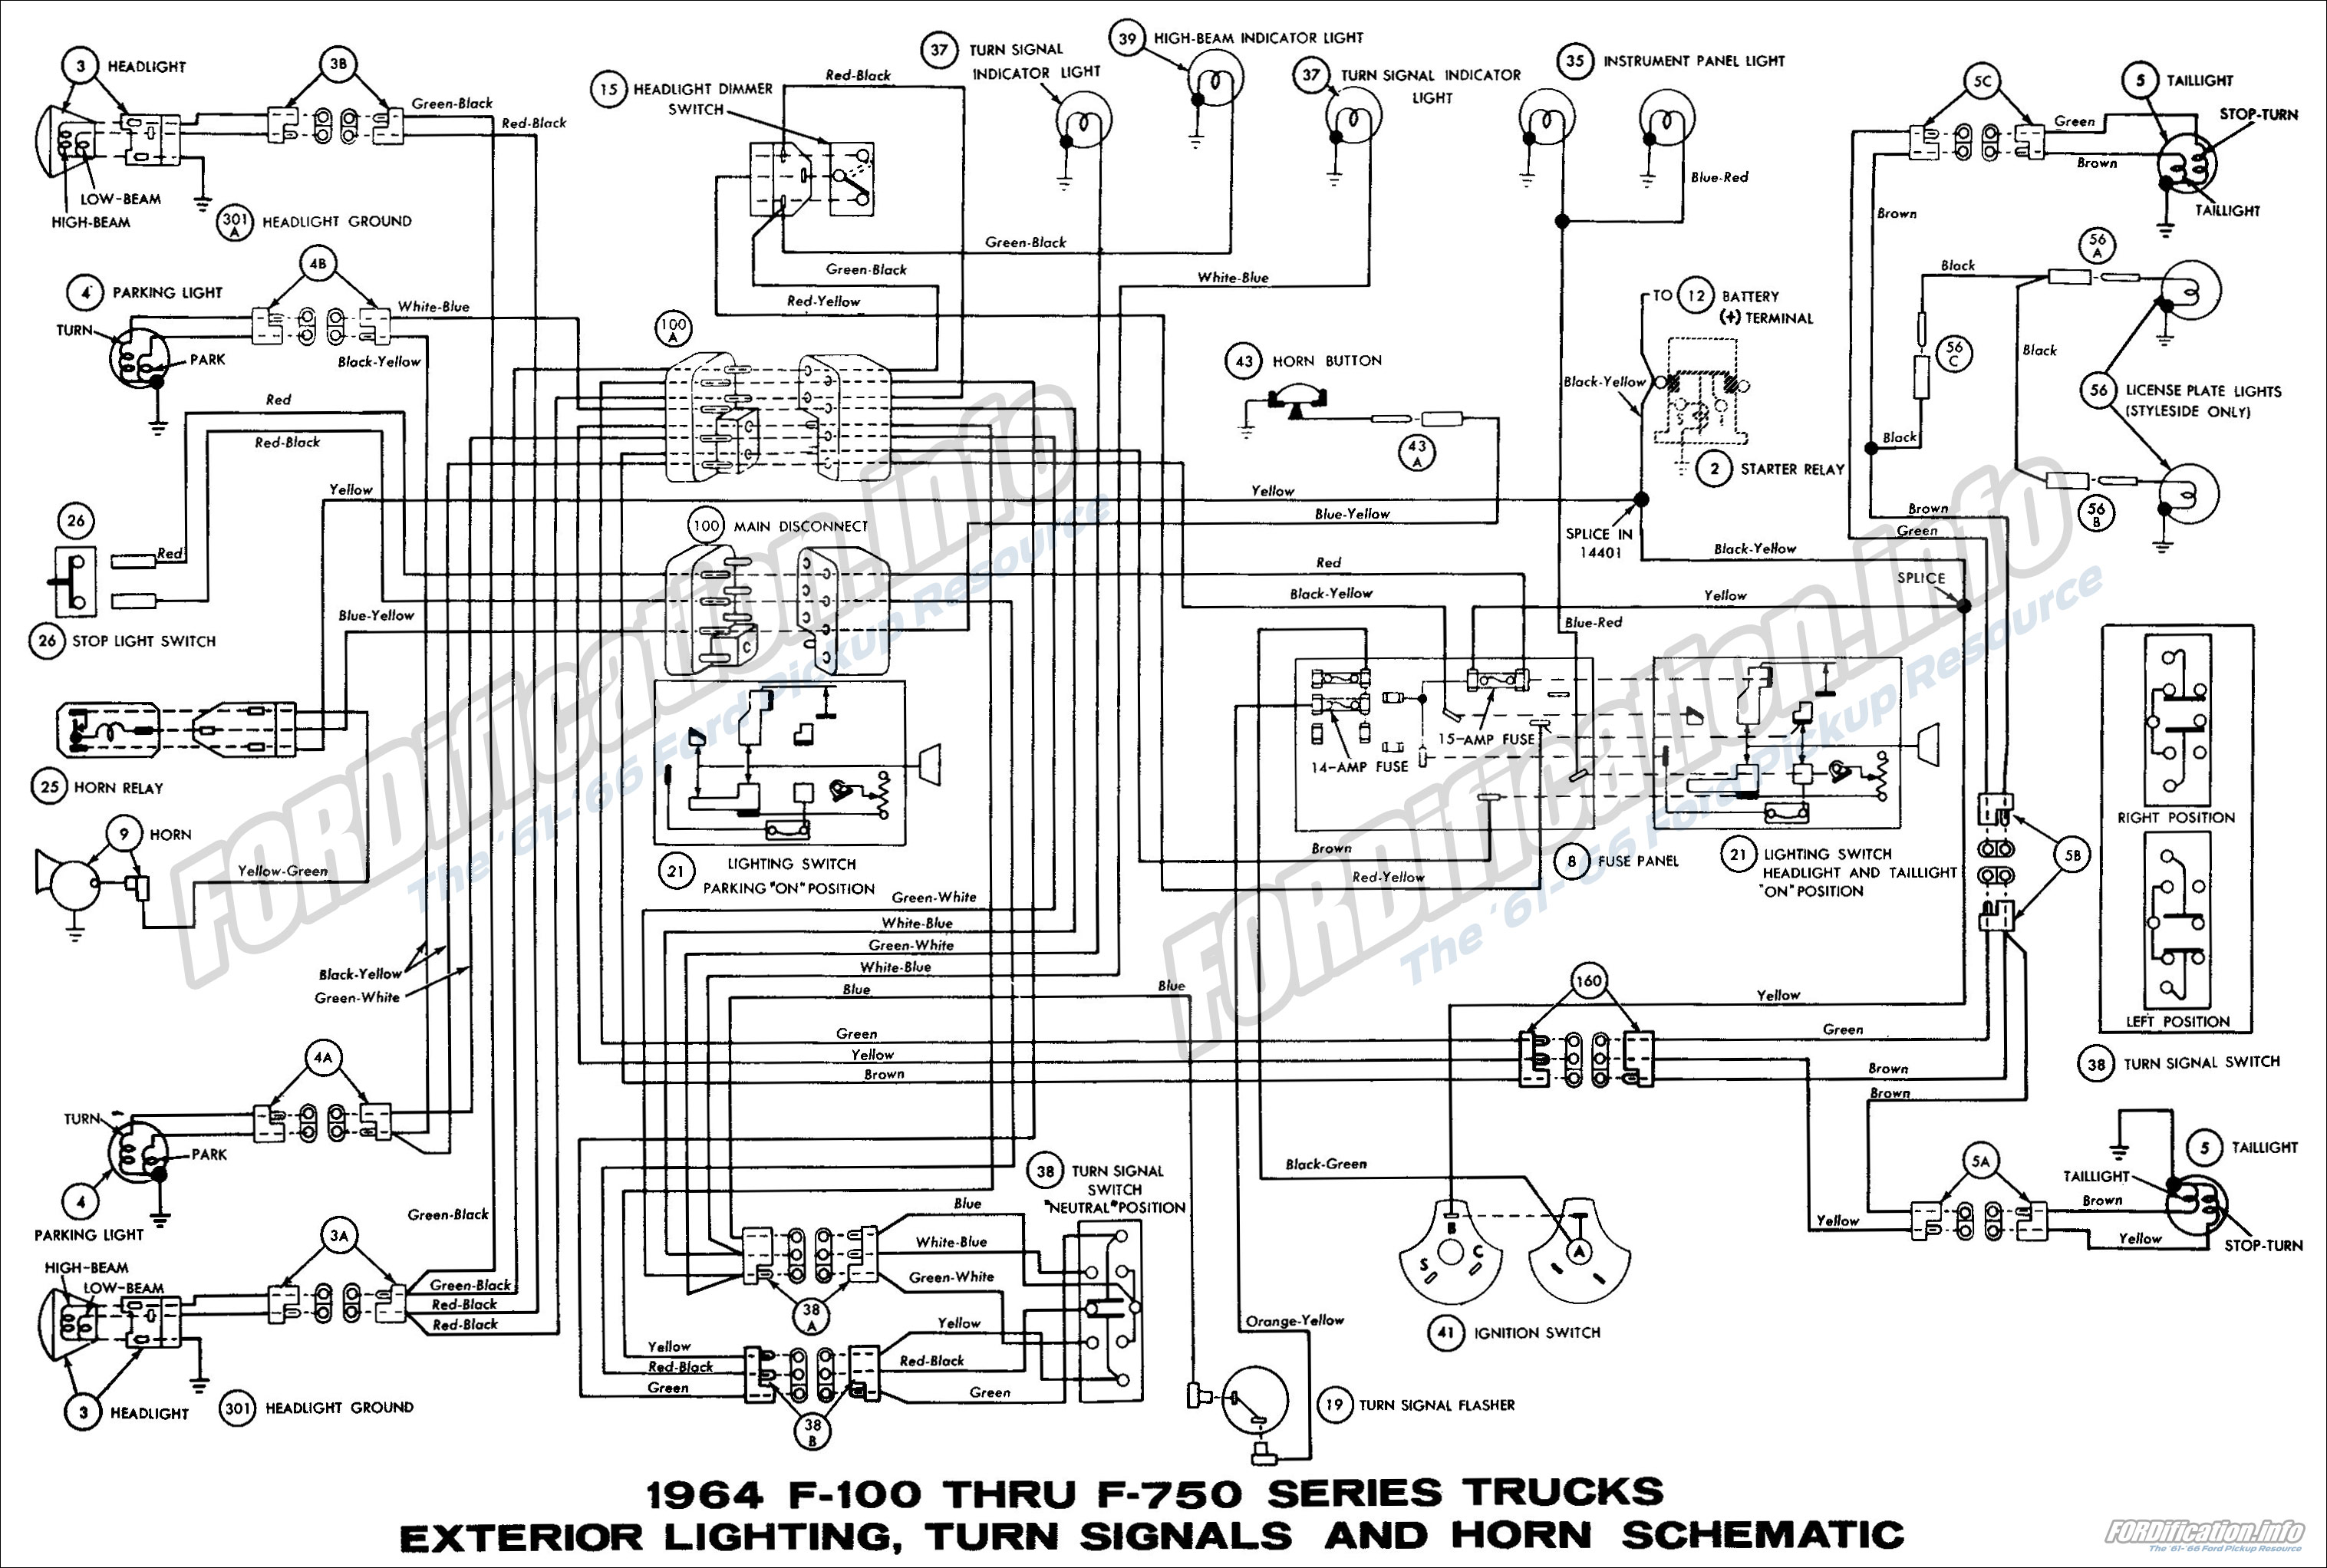 78 motobecane wiring diagram wiring schematic diagram78 motobecane wiring diagram electricity site wiring harness diagram 78 motobecane wiring diagram wiring diagram